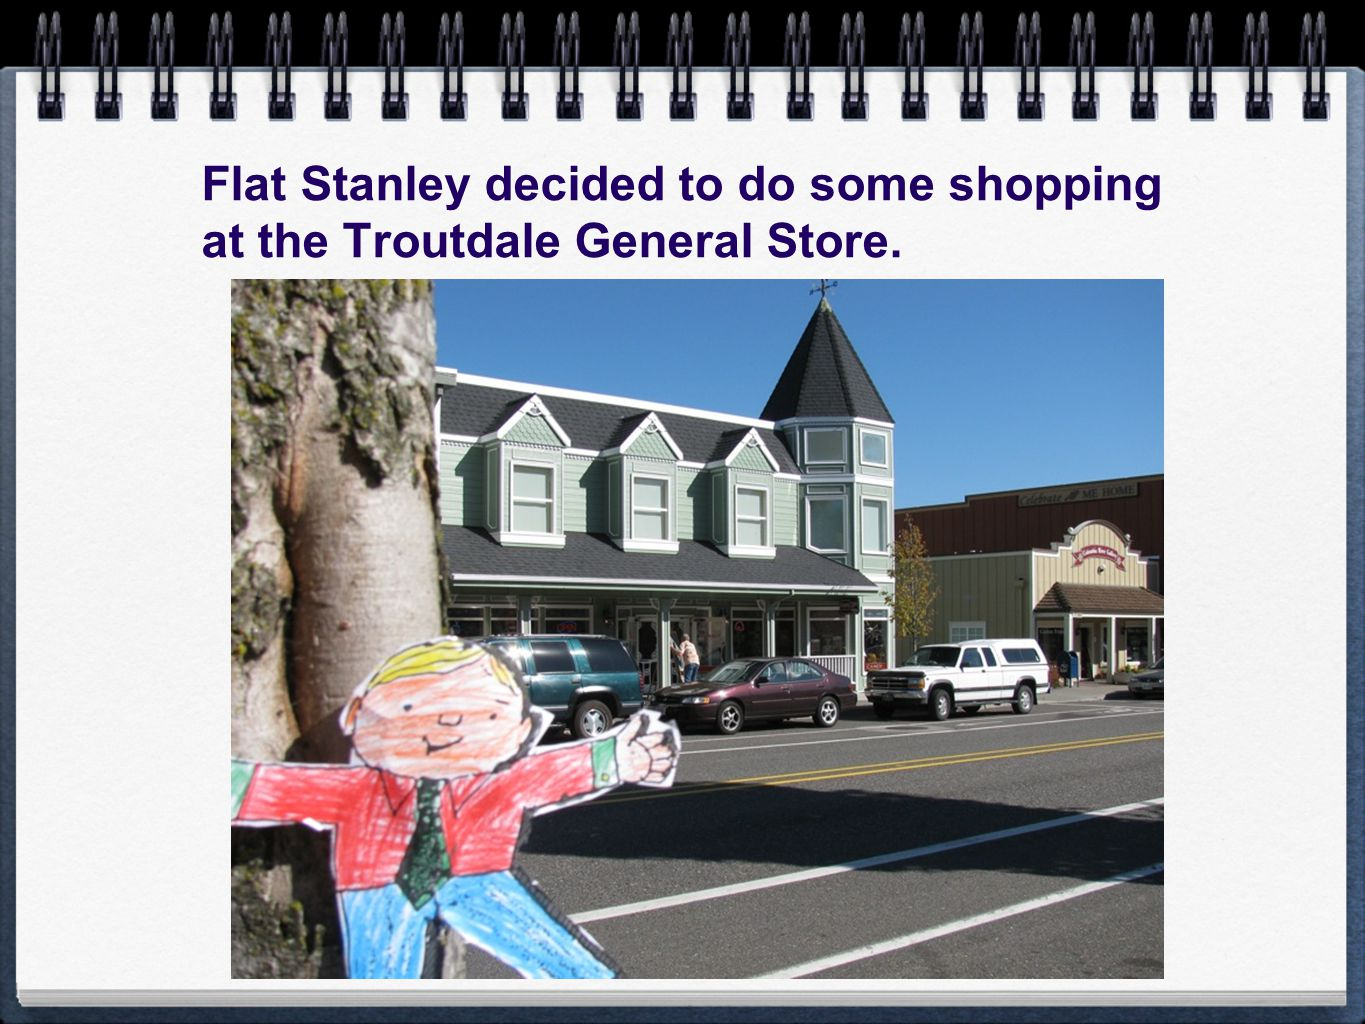 Flat Stanley decided to do some shopping at the Troutdale General Store.